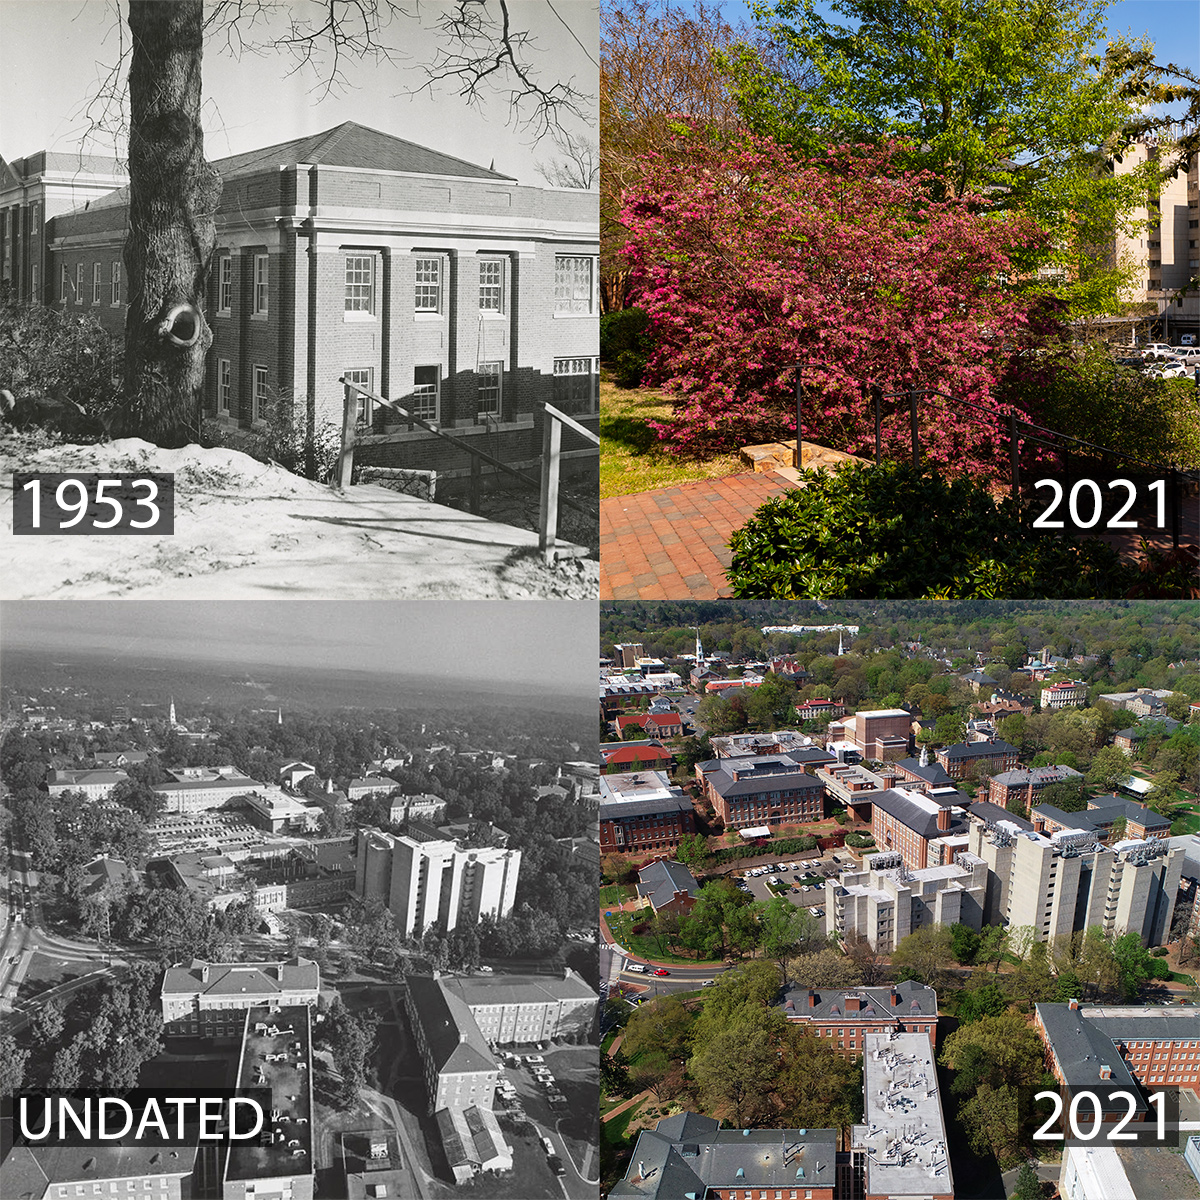 A montage of photos, including Venable Hall in 1953 and in 2021